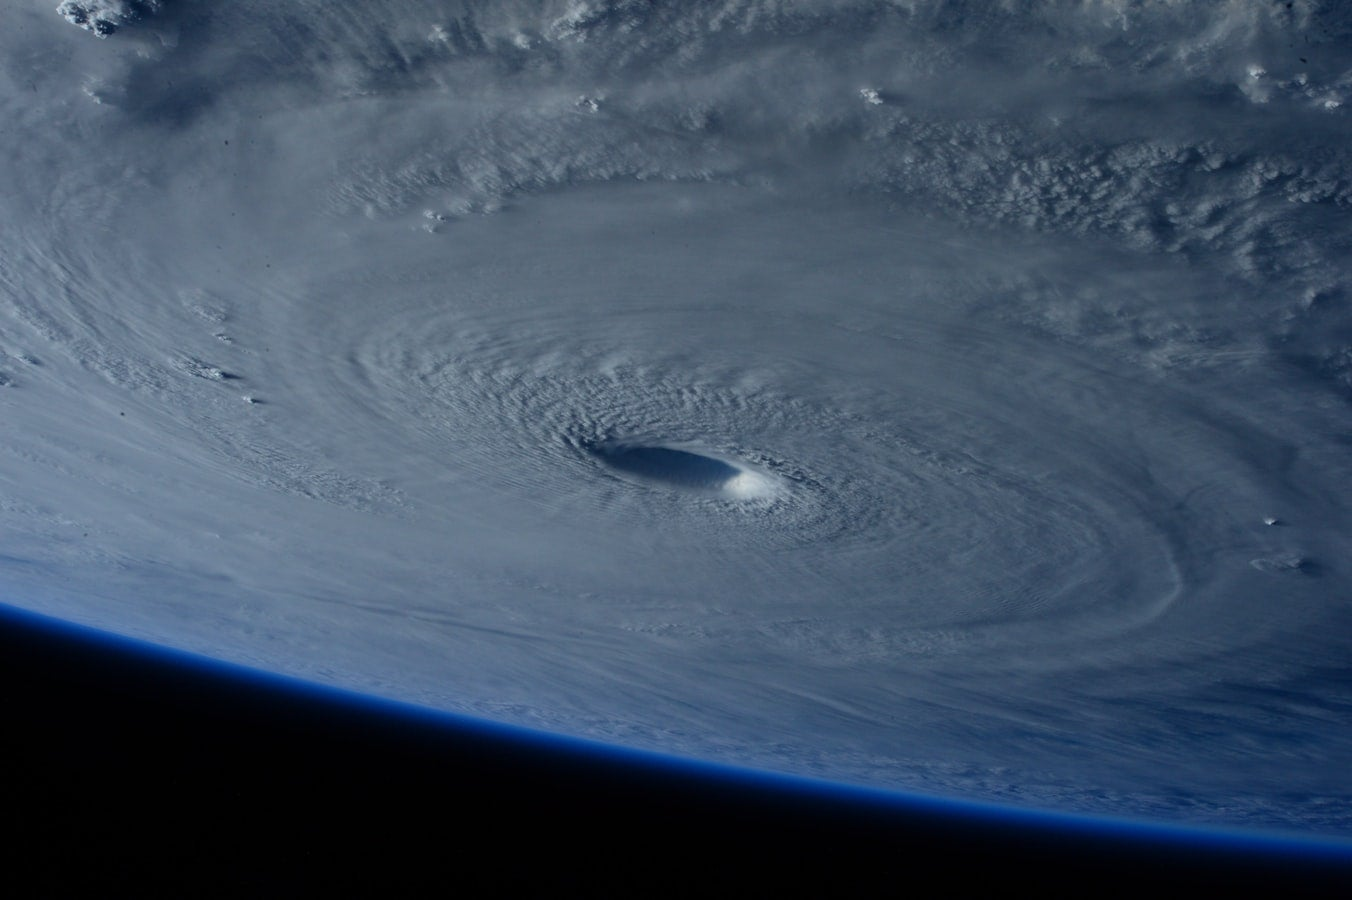 Nuking hurricanes out of the sky 'doesn't make sense at all'